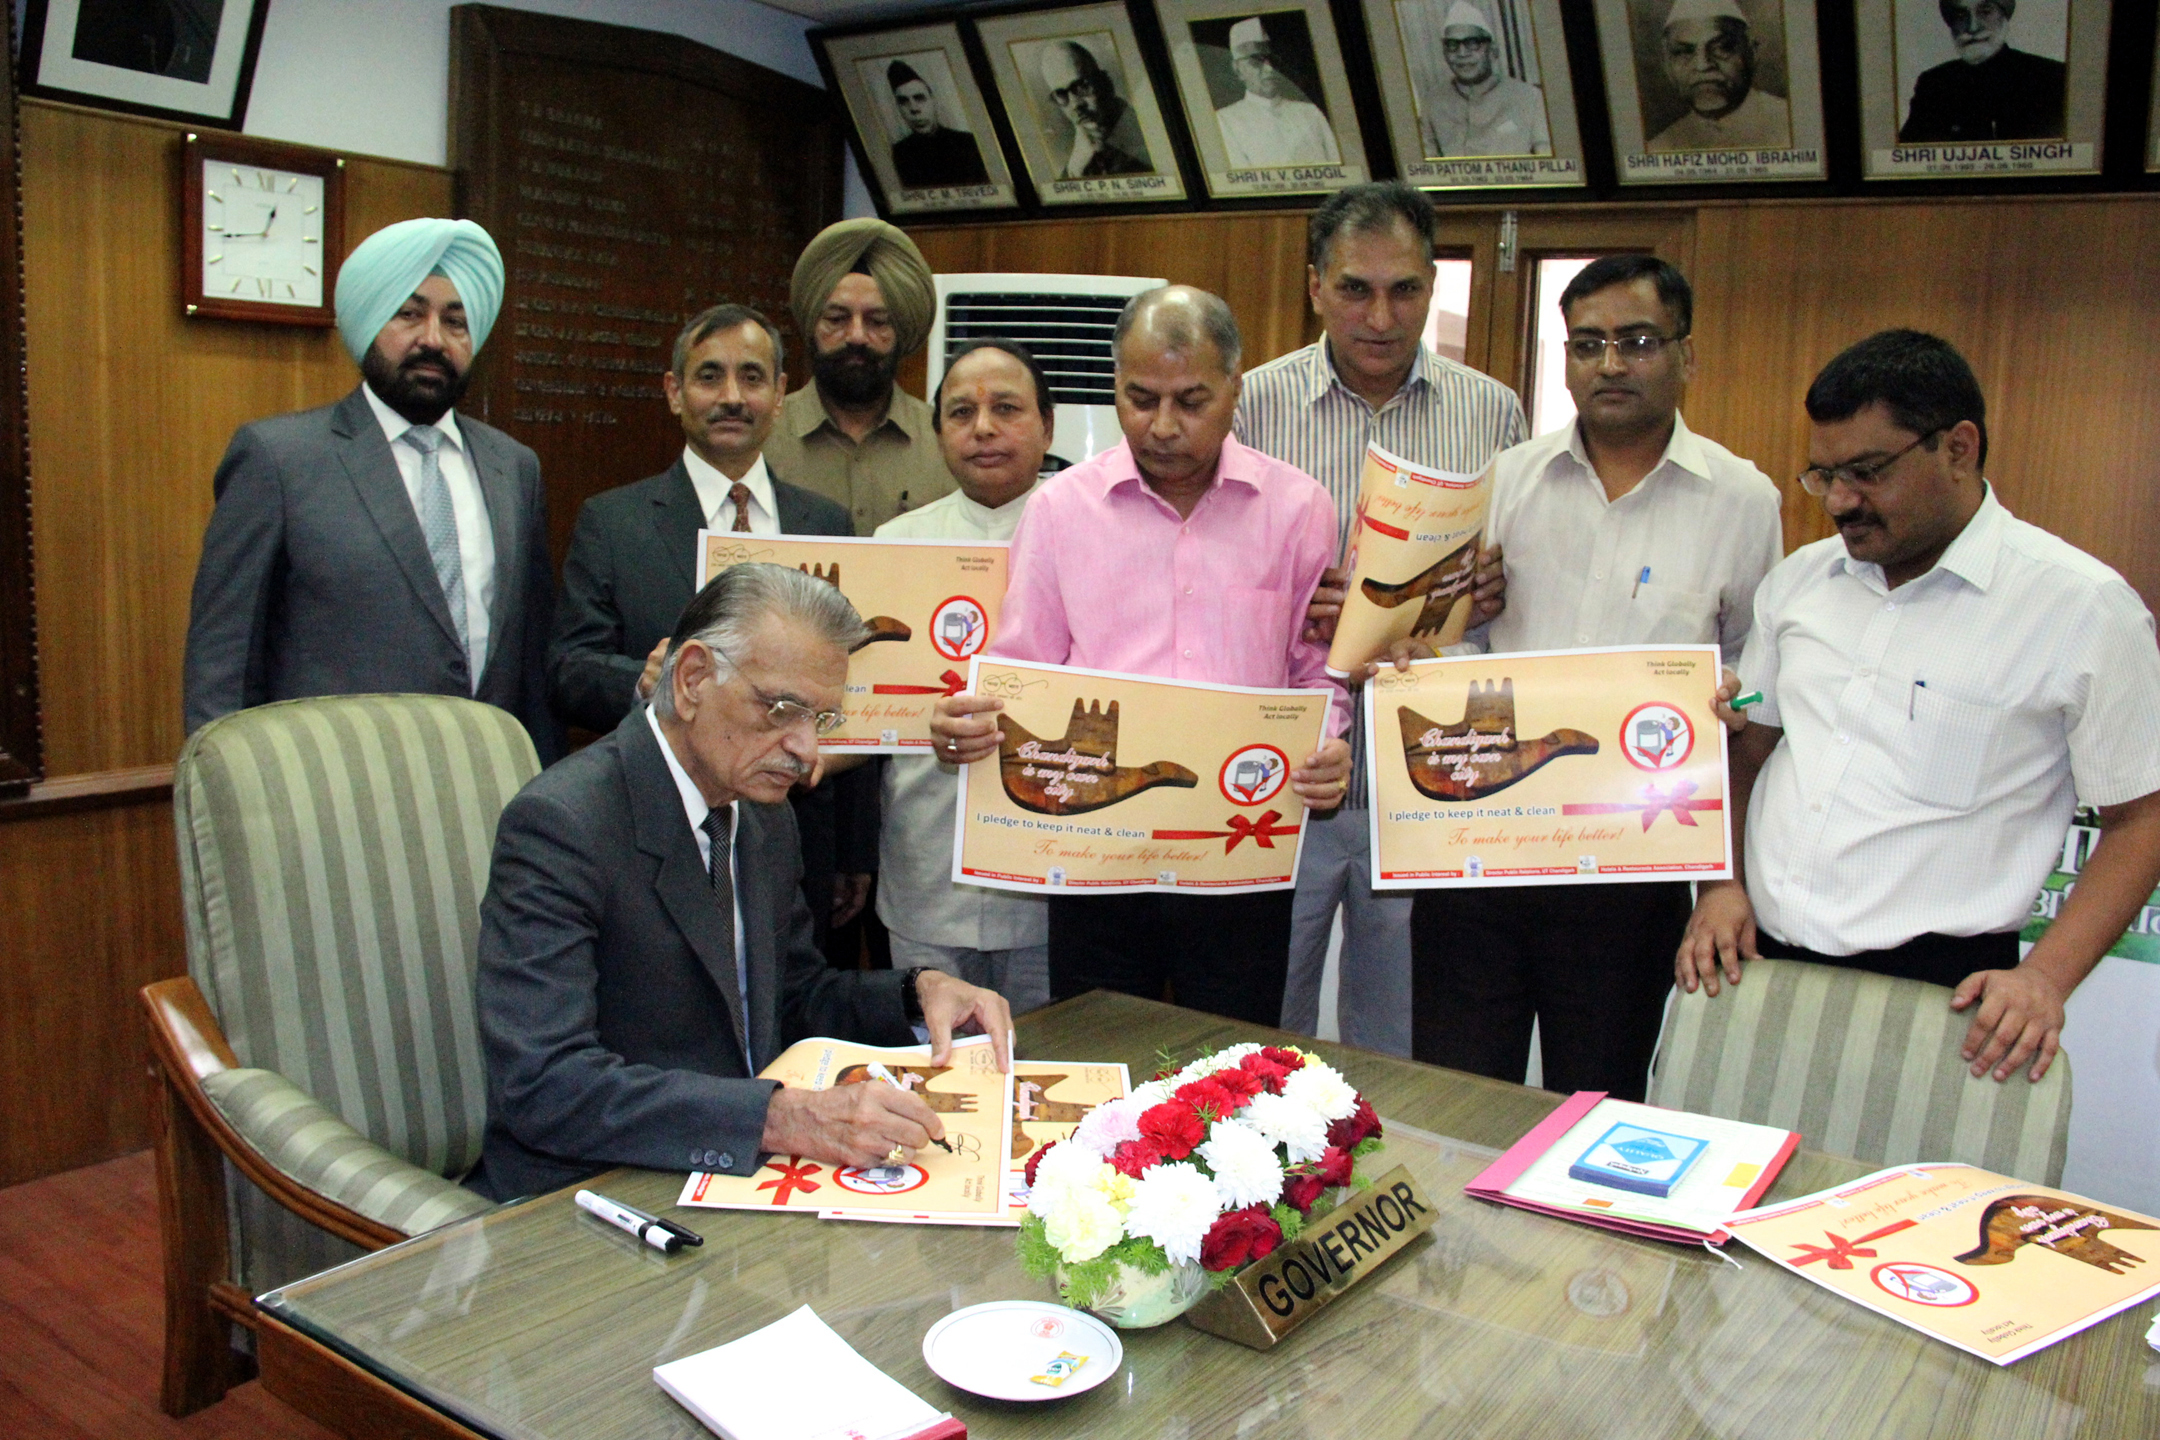 The Punjab Governor and Administrator, U.T., Chandigarh, Sh. Shivraj V. Patil  putting his signatures on the poster perpared by Director Public Relations in assocation with the Hotel & Restaurant Asscociation Chandigarh to mark the launching of signature campaign in the City to pledge to keep the city neat and clean at Punjab Raj Bhavan on 15-10-2014